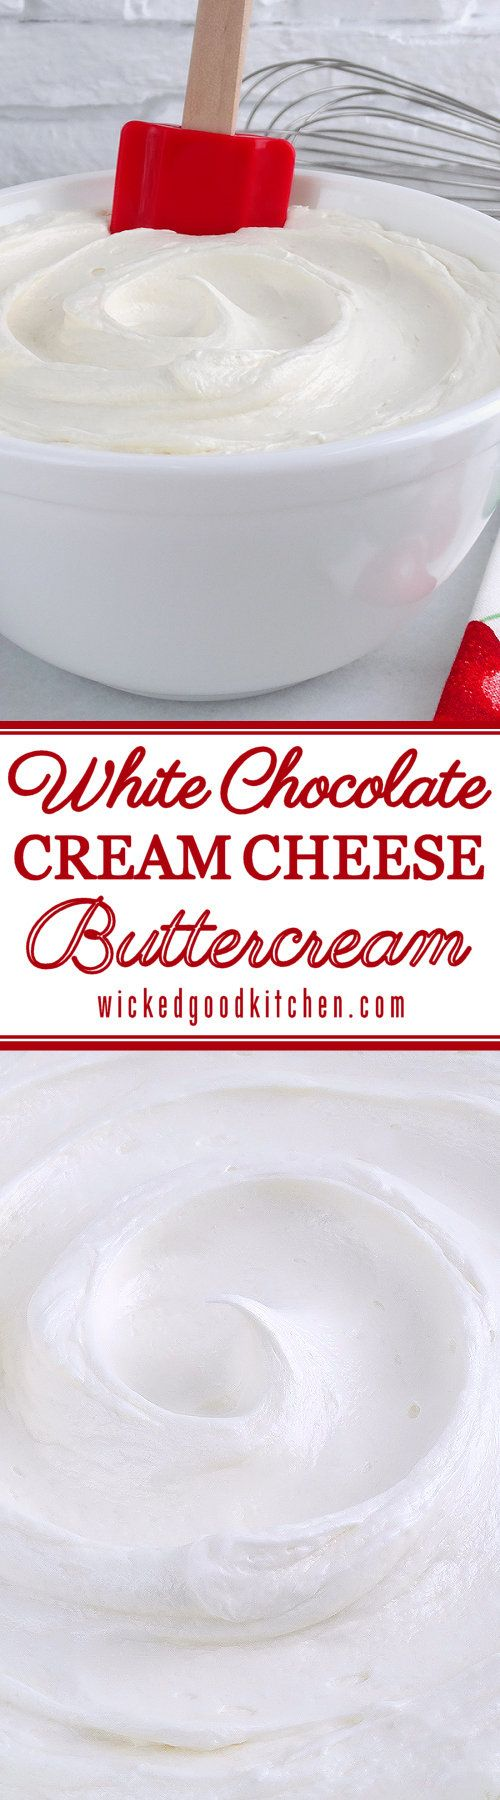 White Chocolate Cream Cheese Buttercream Frosting ~ This special frosting is full of buttery flavor and is creamy, light and fluffy. Just the right amount of butter, cream cheese and white chocolate is used to create a buttercream that not only pipes beautifully, but has the texture of mousse and tastes just like White Chocolate Cheesecake! | cake filling frosting recipe